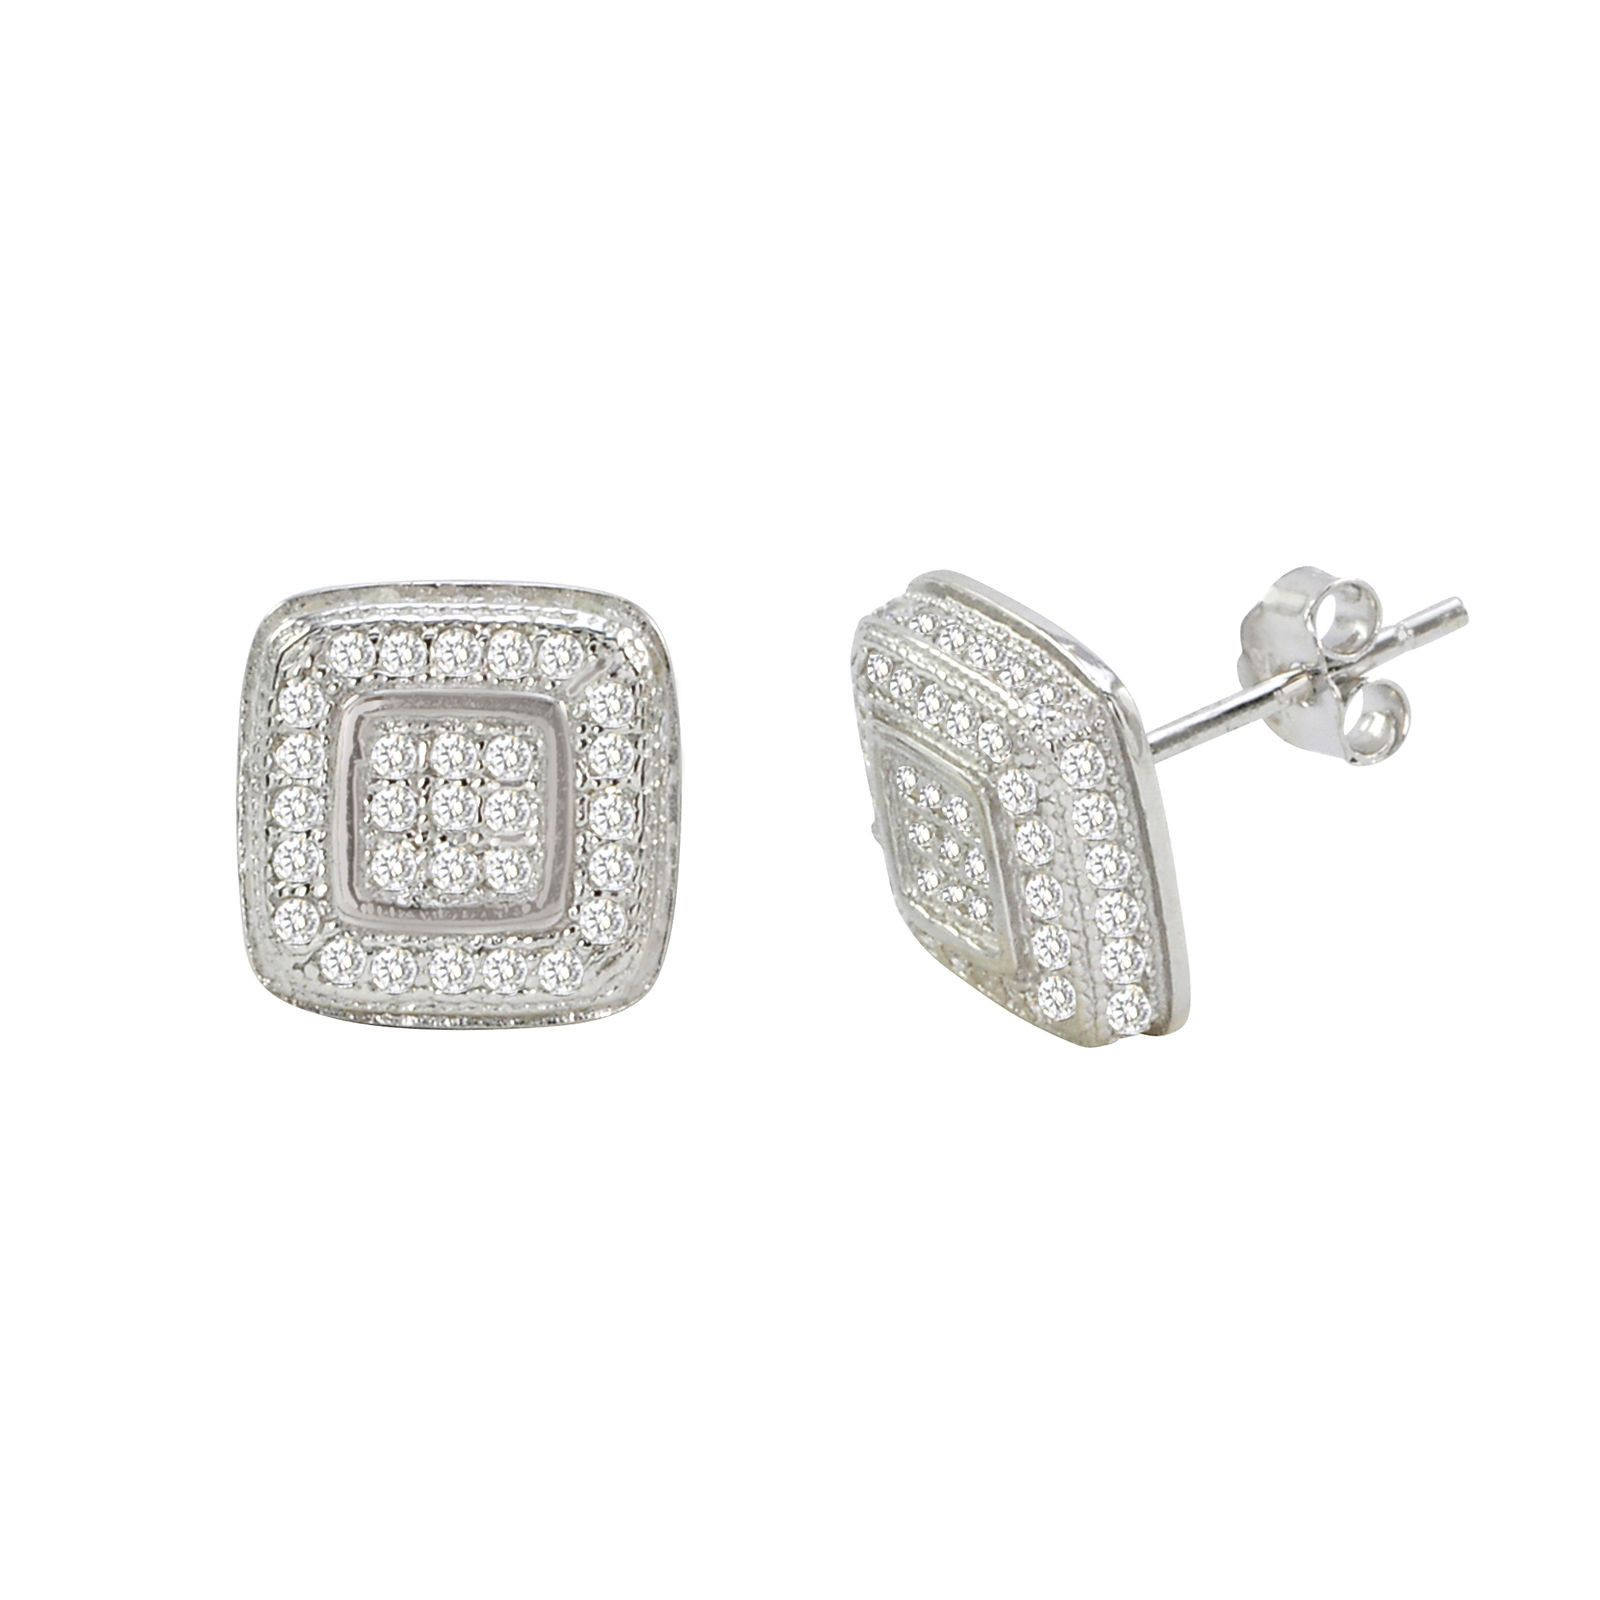 Sterling Silver Micropave Stud Earrings Square With Frame Cz Cubic Zirconia 10mm Stud Earrings Square Earrings Square Earrings Studs